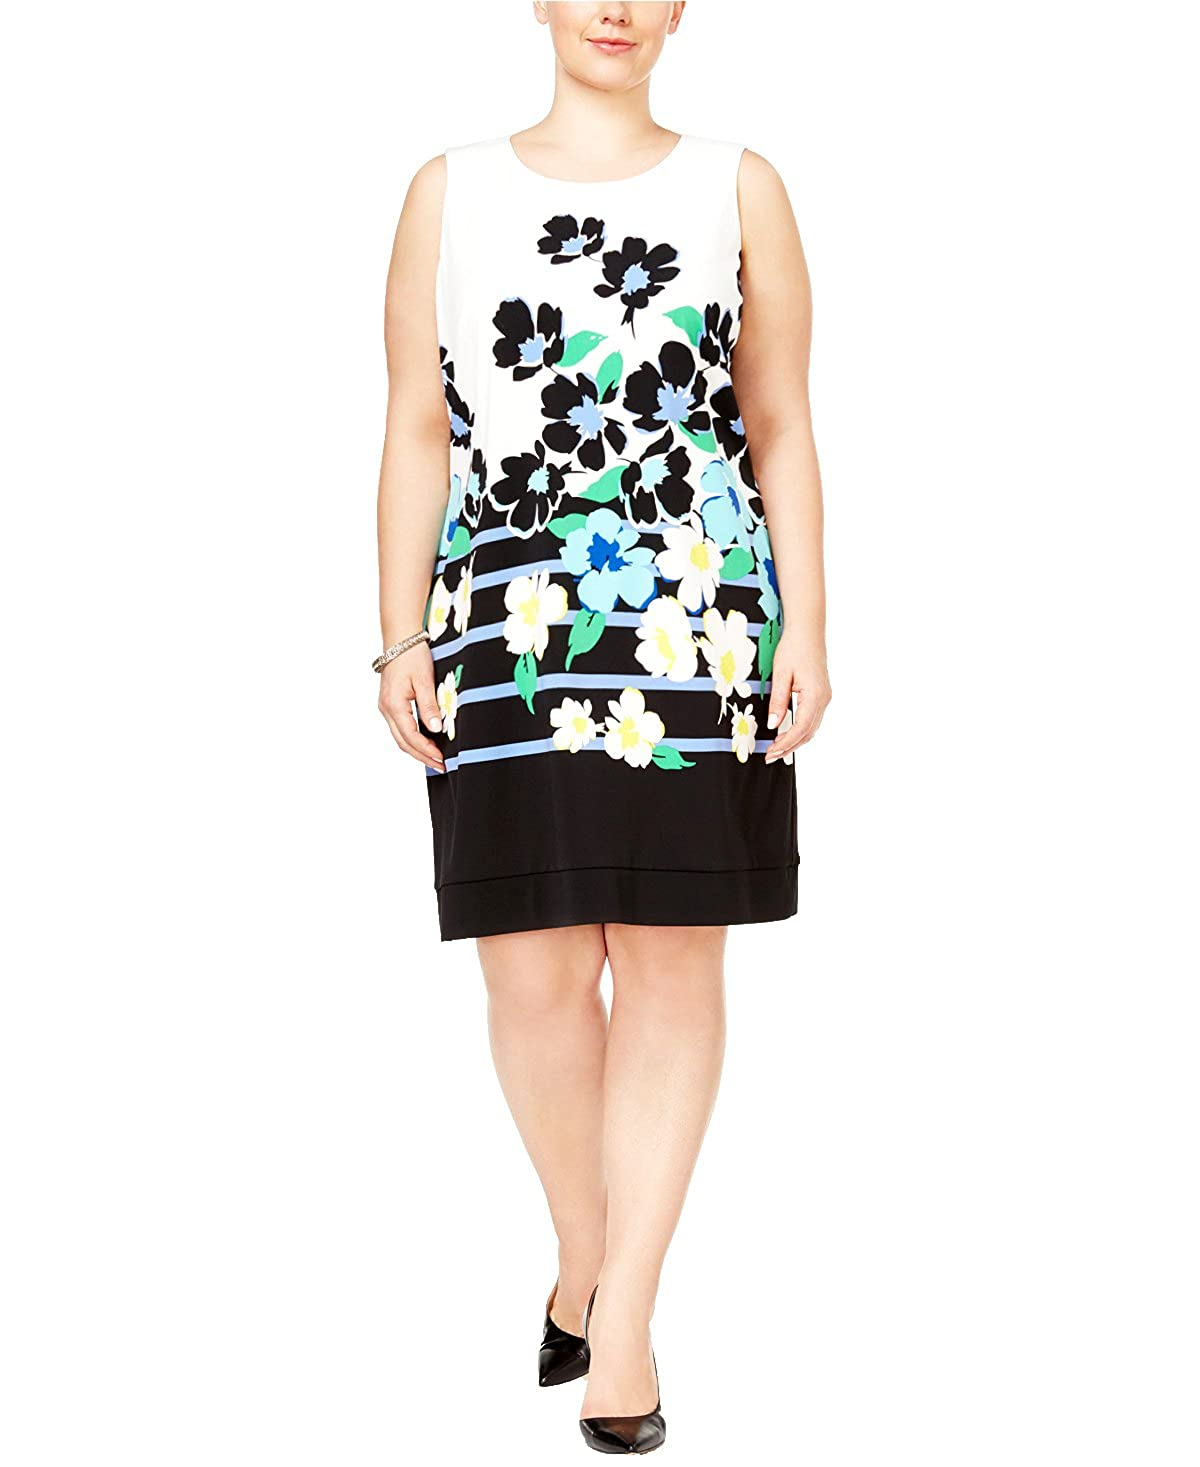 5c3ca641c3b41 Jessica Howard Plus Size Floral-Print Shift Dress And Shrug at Amazon  Women s Clothing store